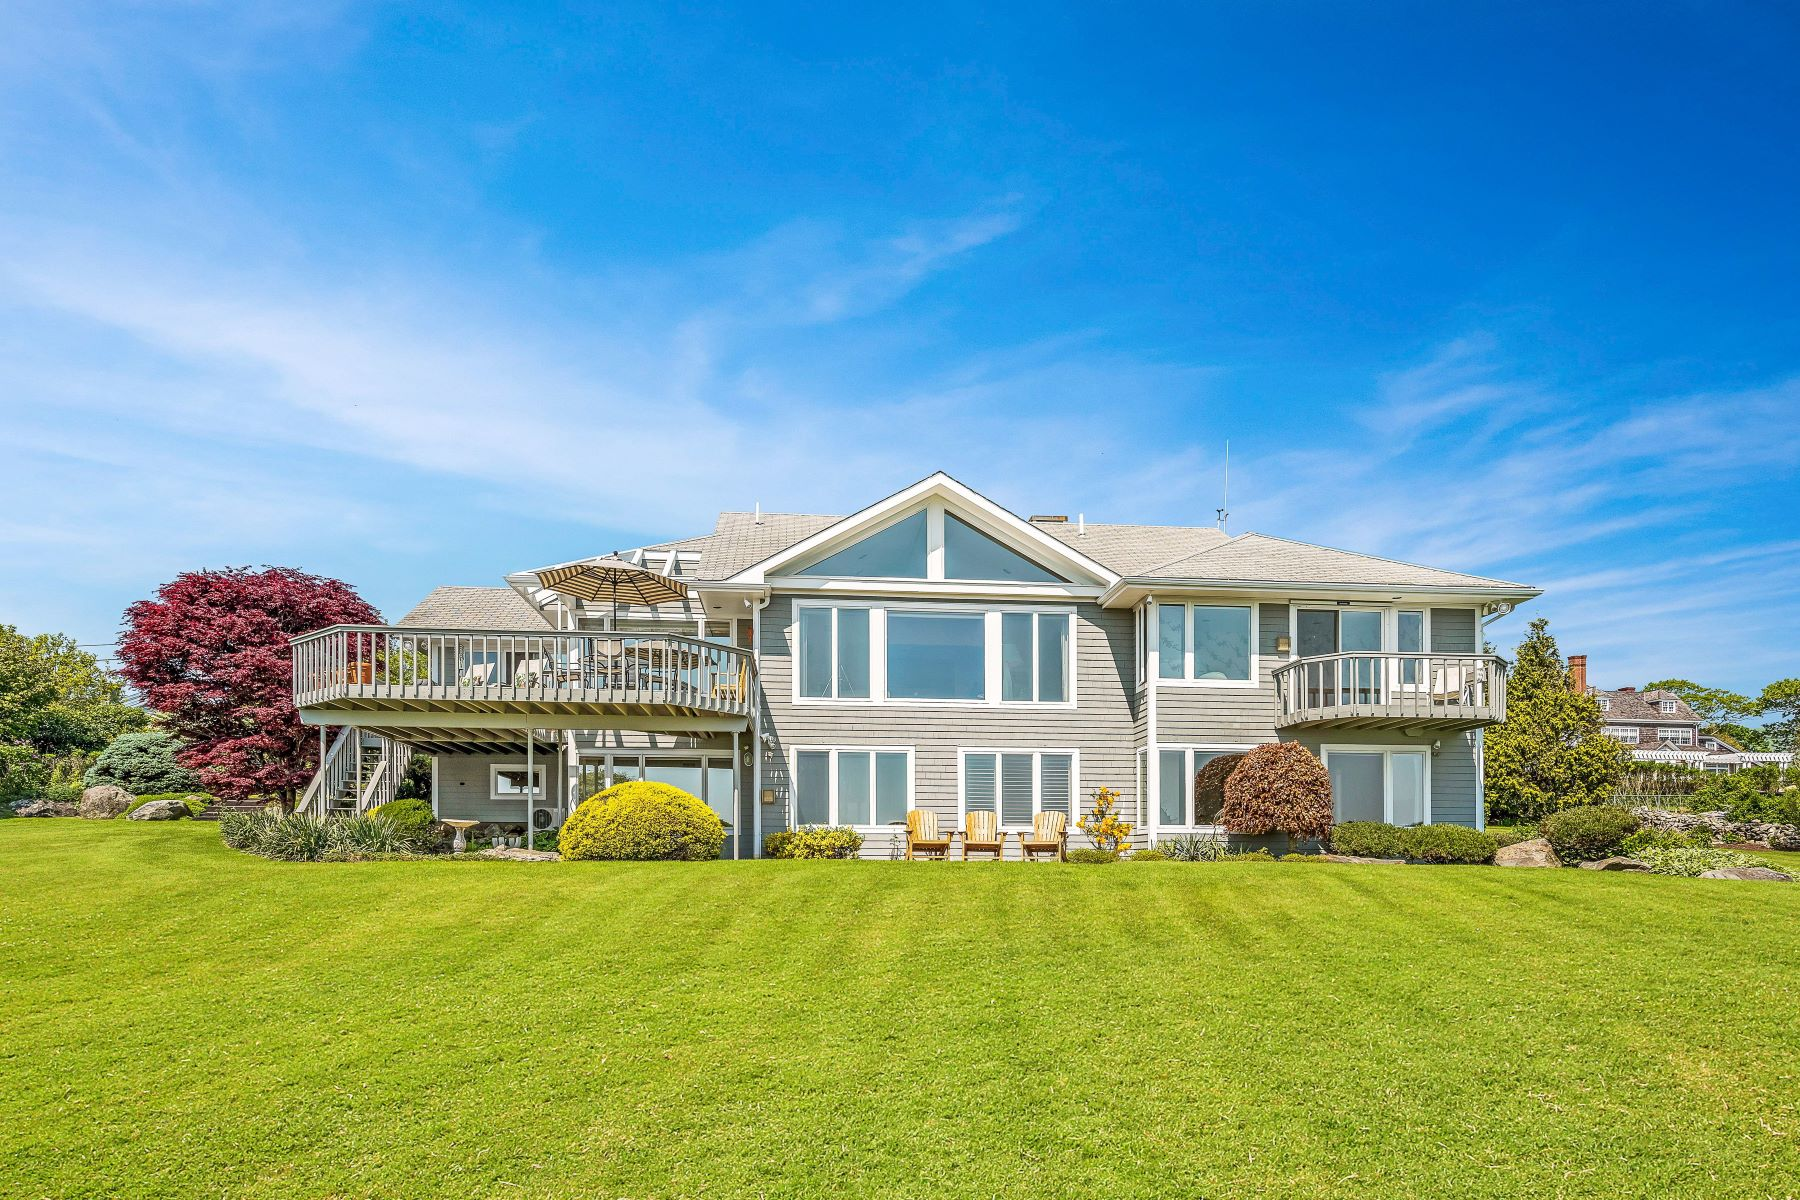 Single Family Homes for Sale at 60 North Cliff Dr., Narragansett, RI 60 North Cliff Dr. Narragansett, Rhode Island 02882 United States